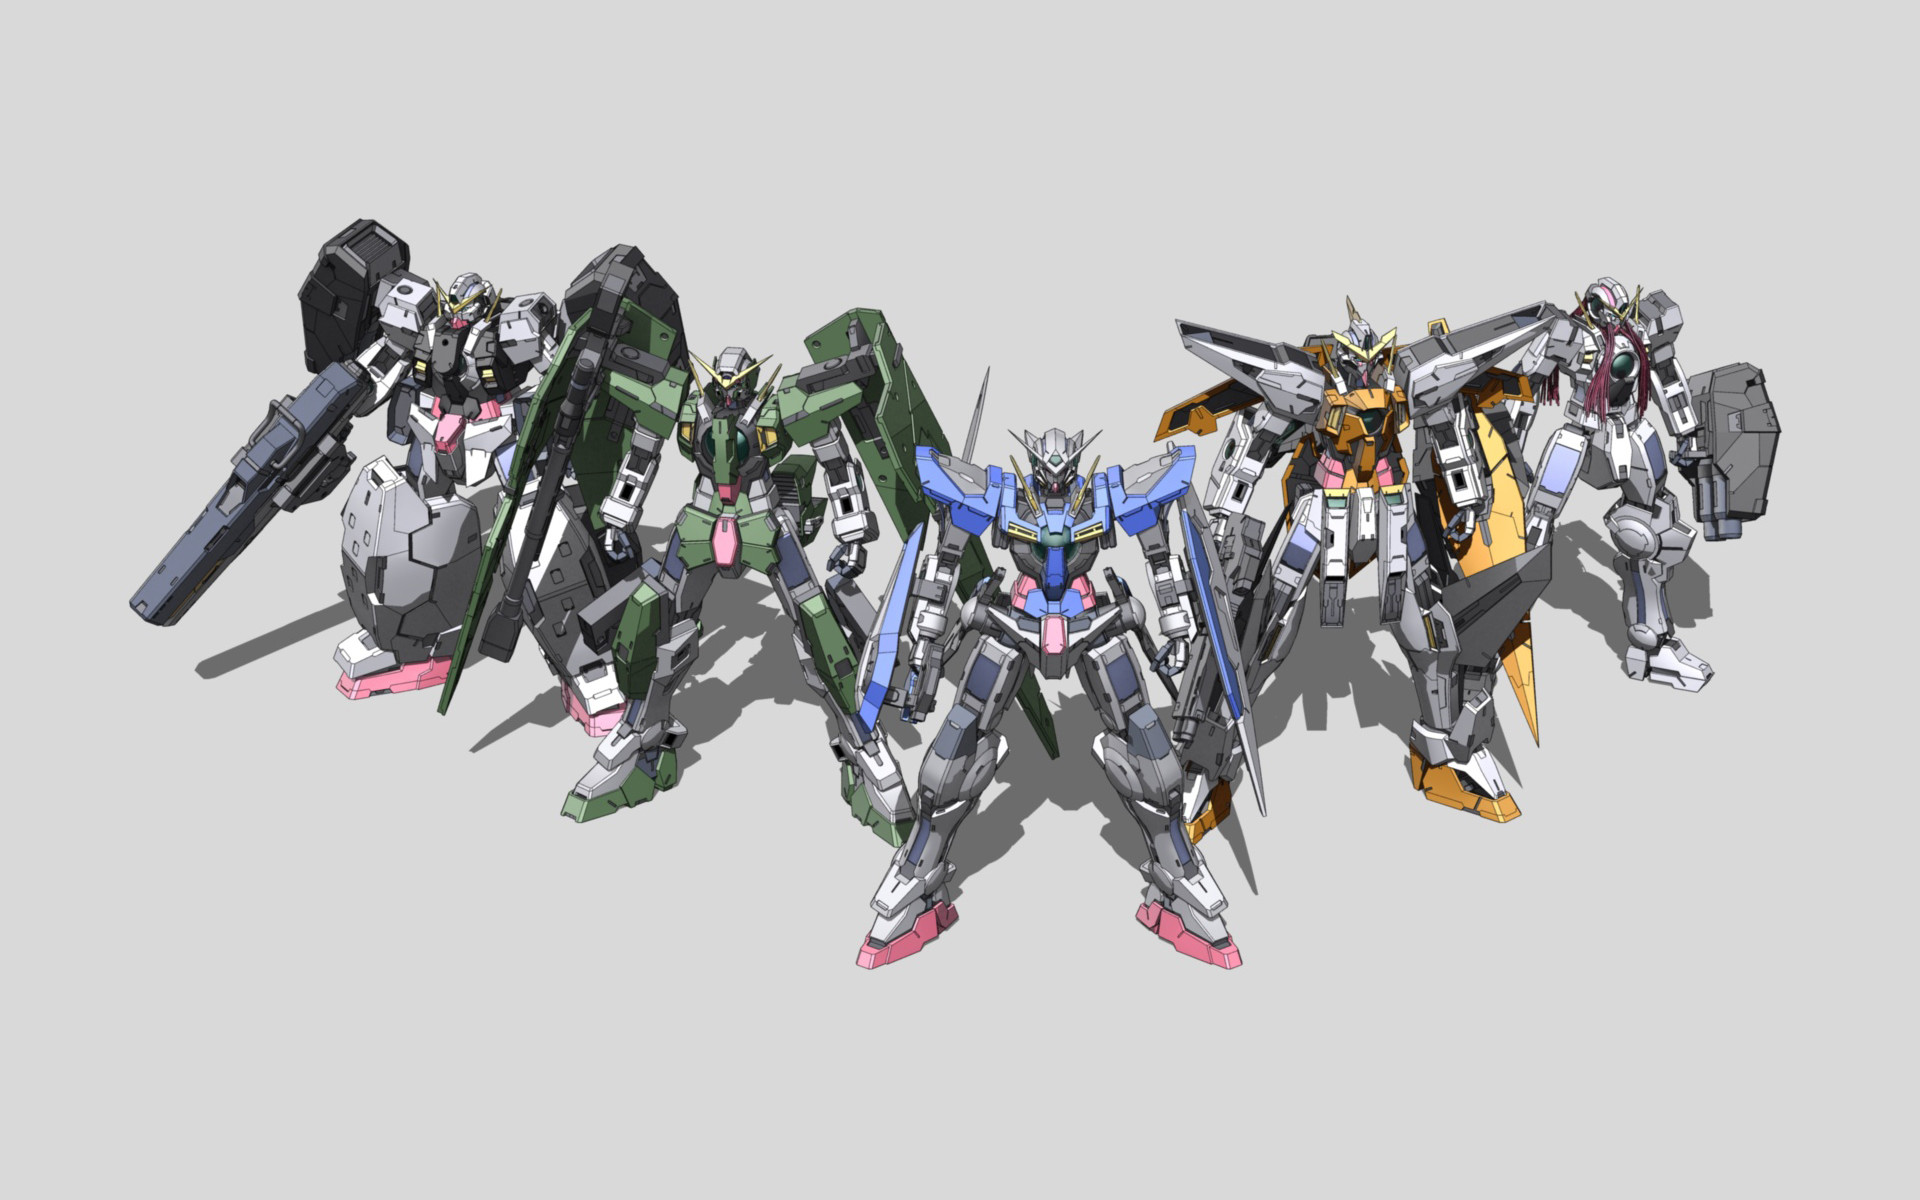 1920x1200 Tags: Anime, Mobile Suit Gundam 00, Mobile Suit Gundam Wing, Wallpaper